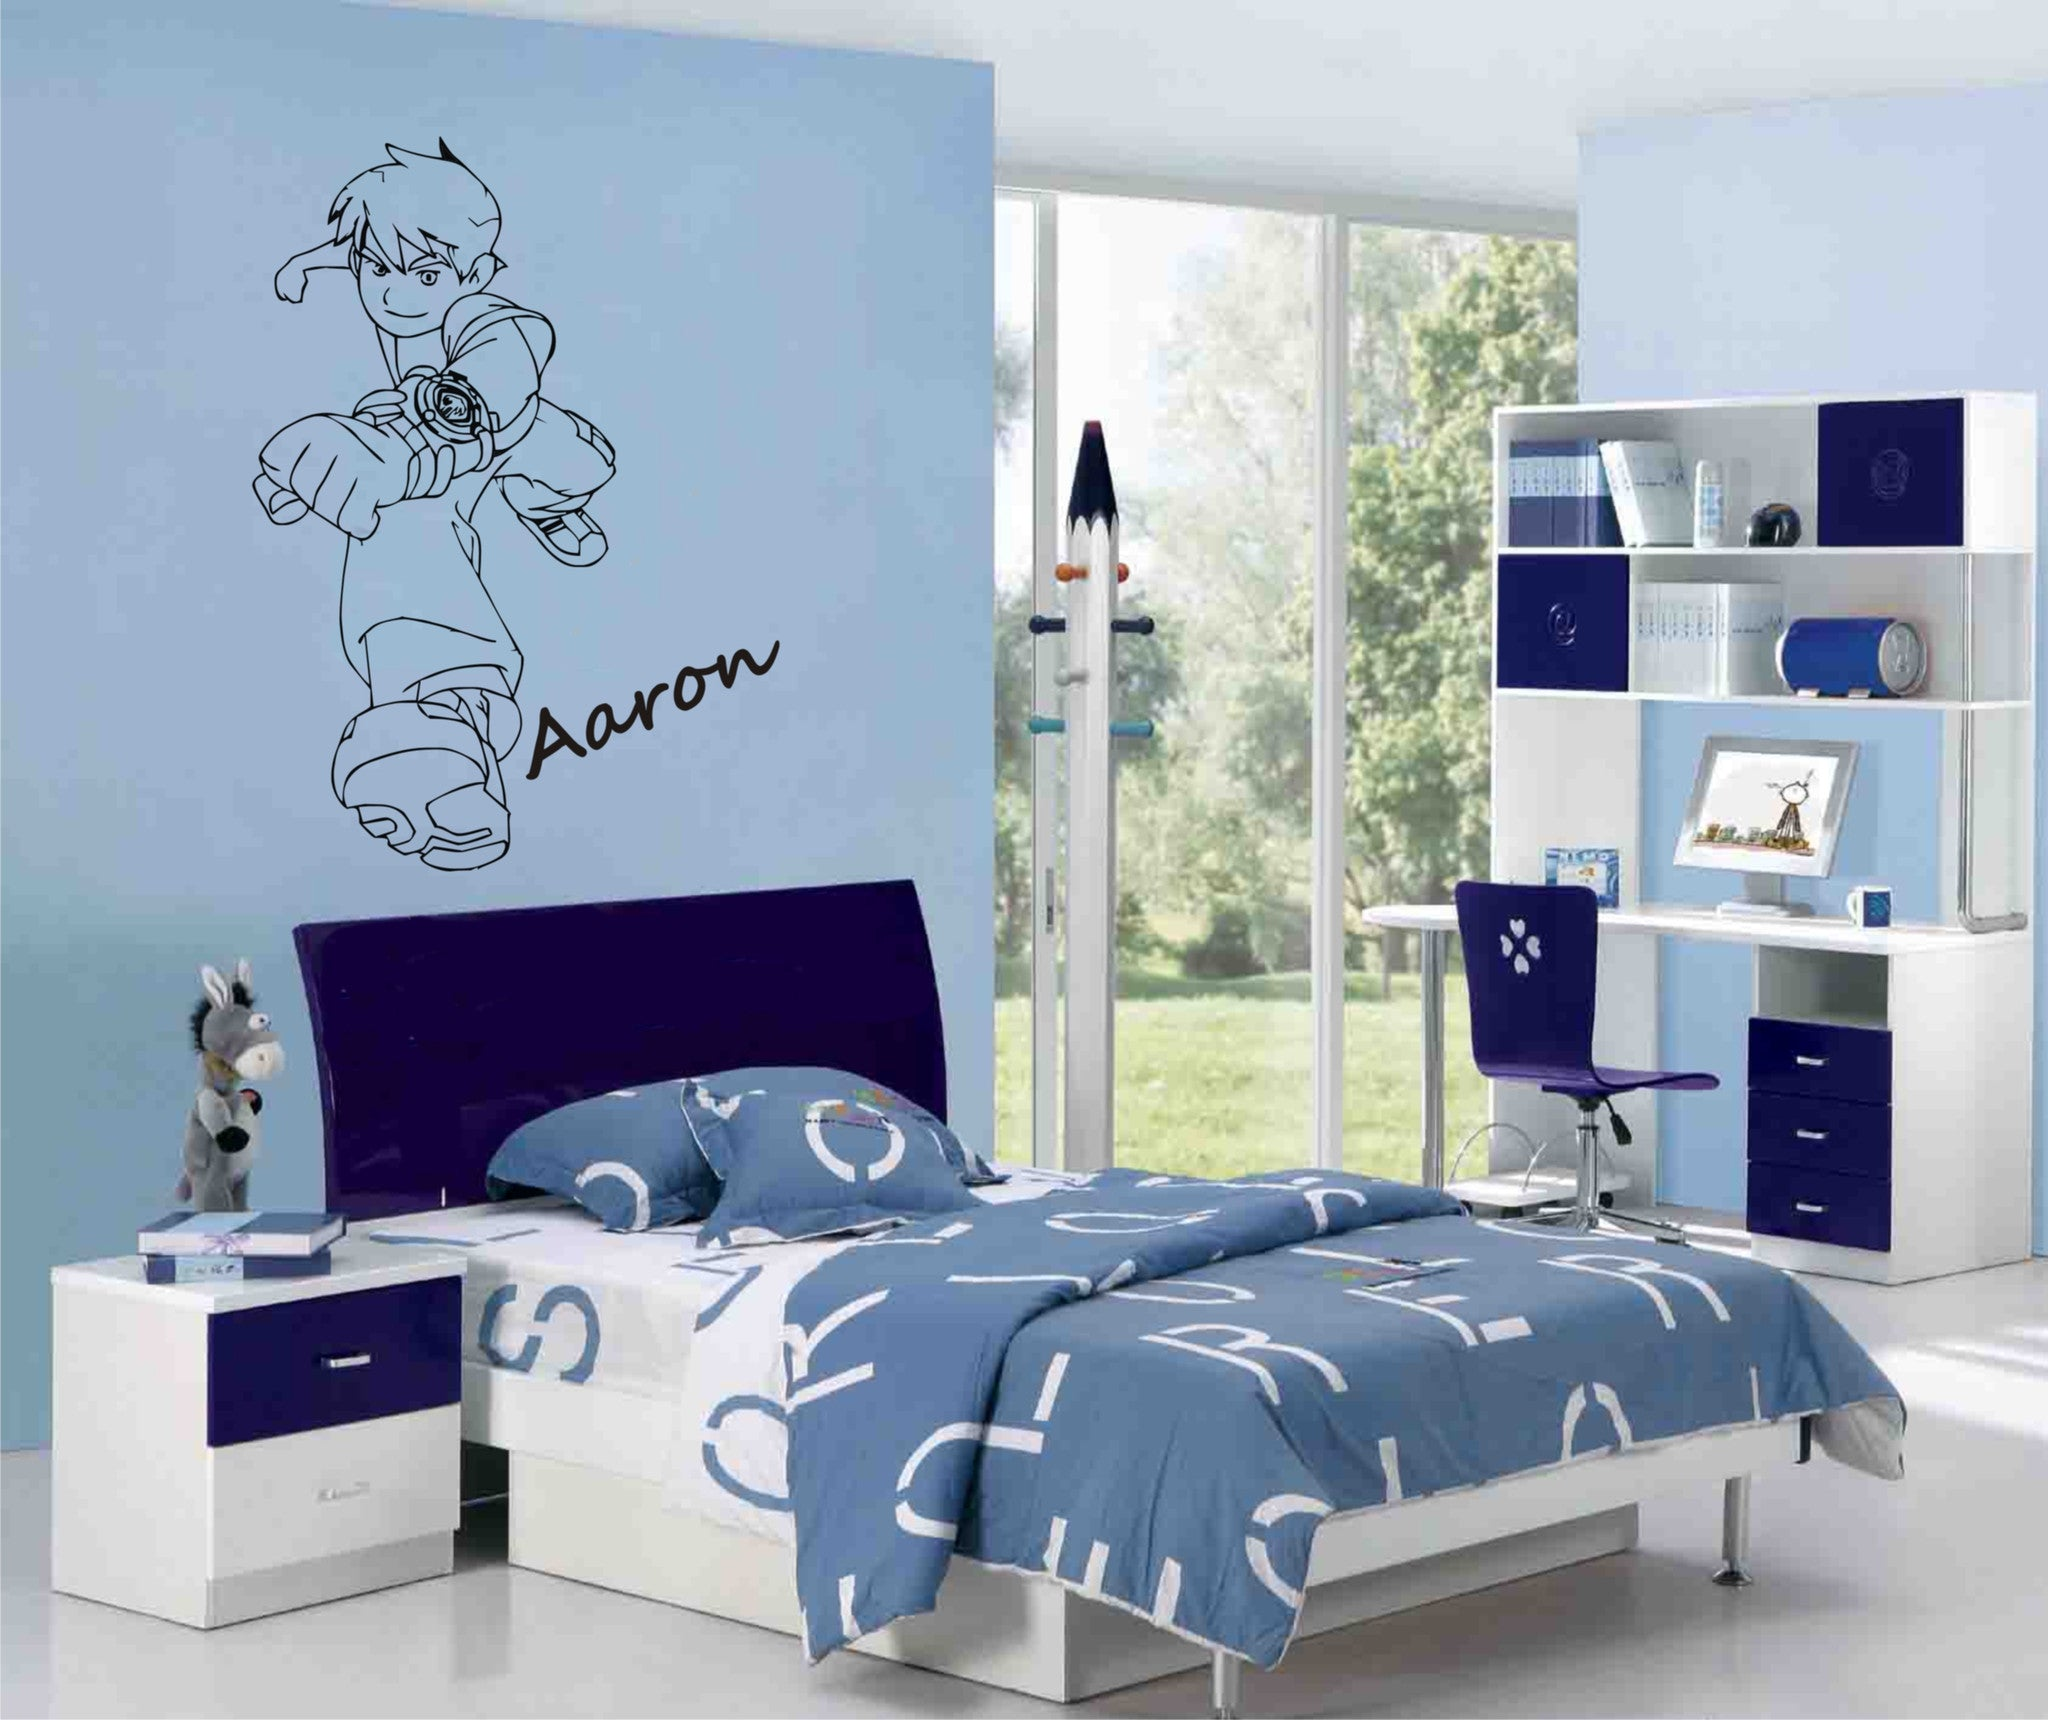 Ben 10 Wall Art Sticker Personalised With Any Name Wall Art Shop